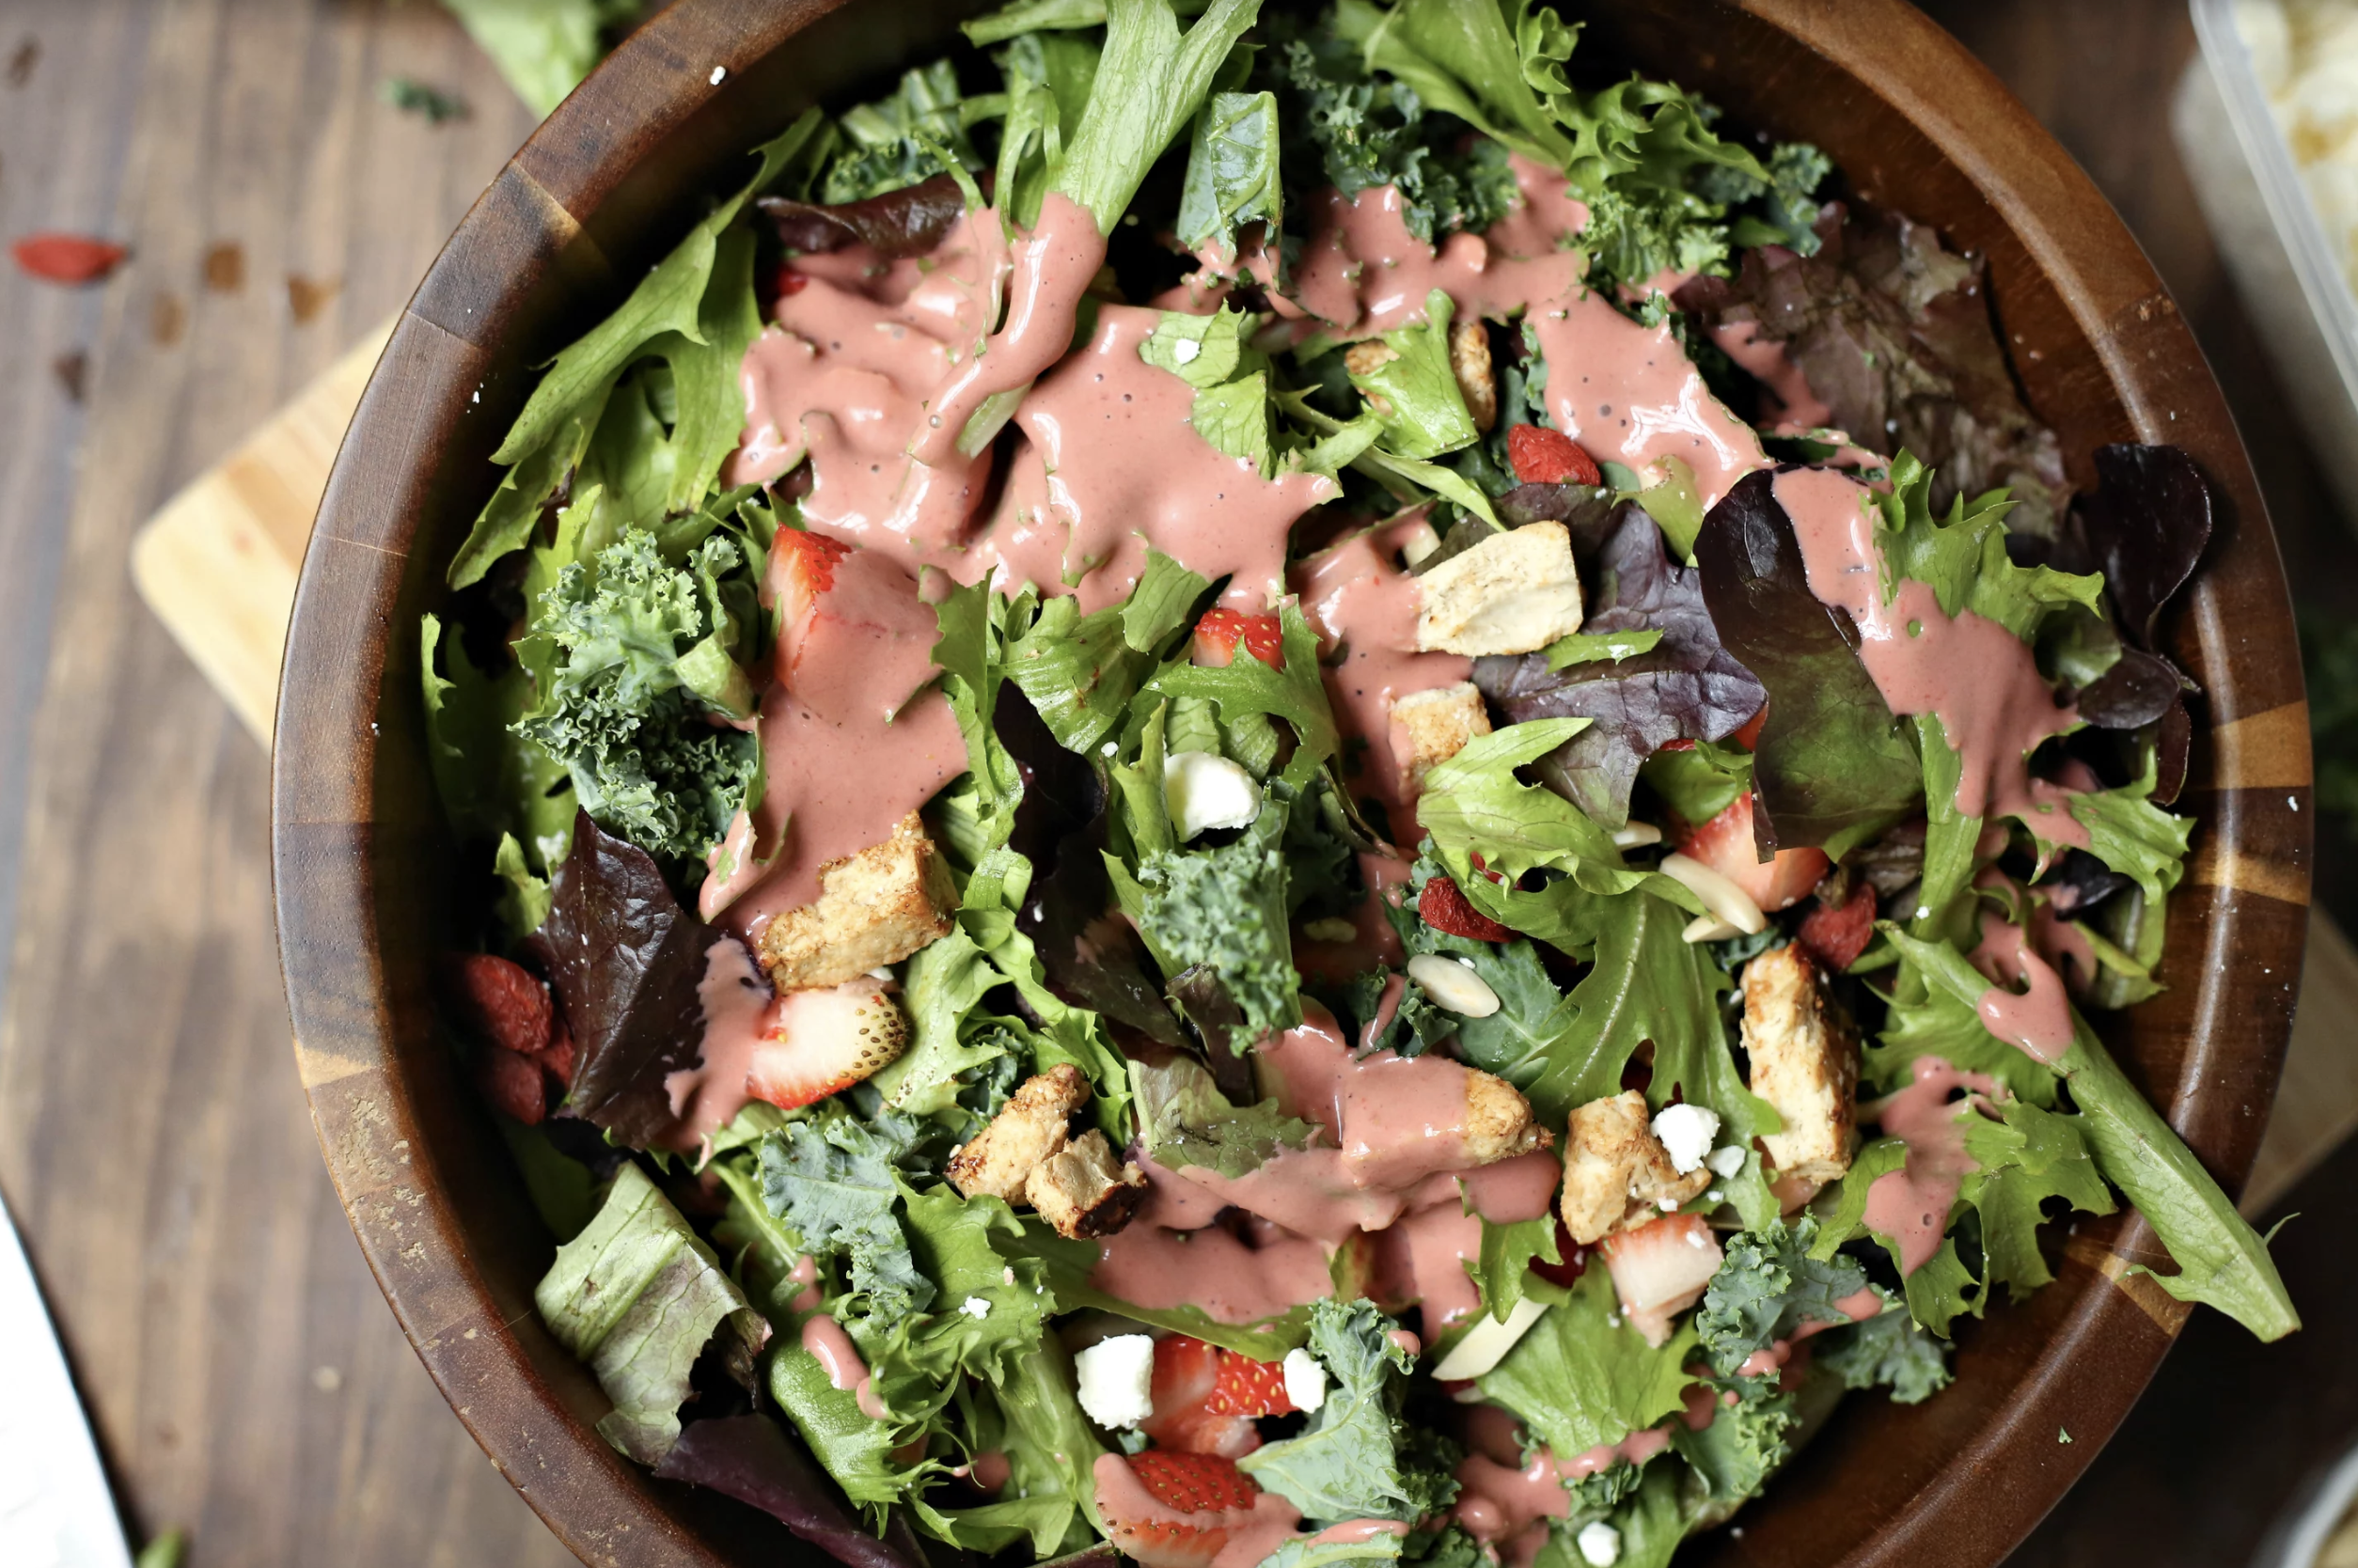 Delicious recipe for Spring Salad with Strawberry Balsamic Dressing!